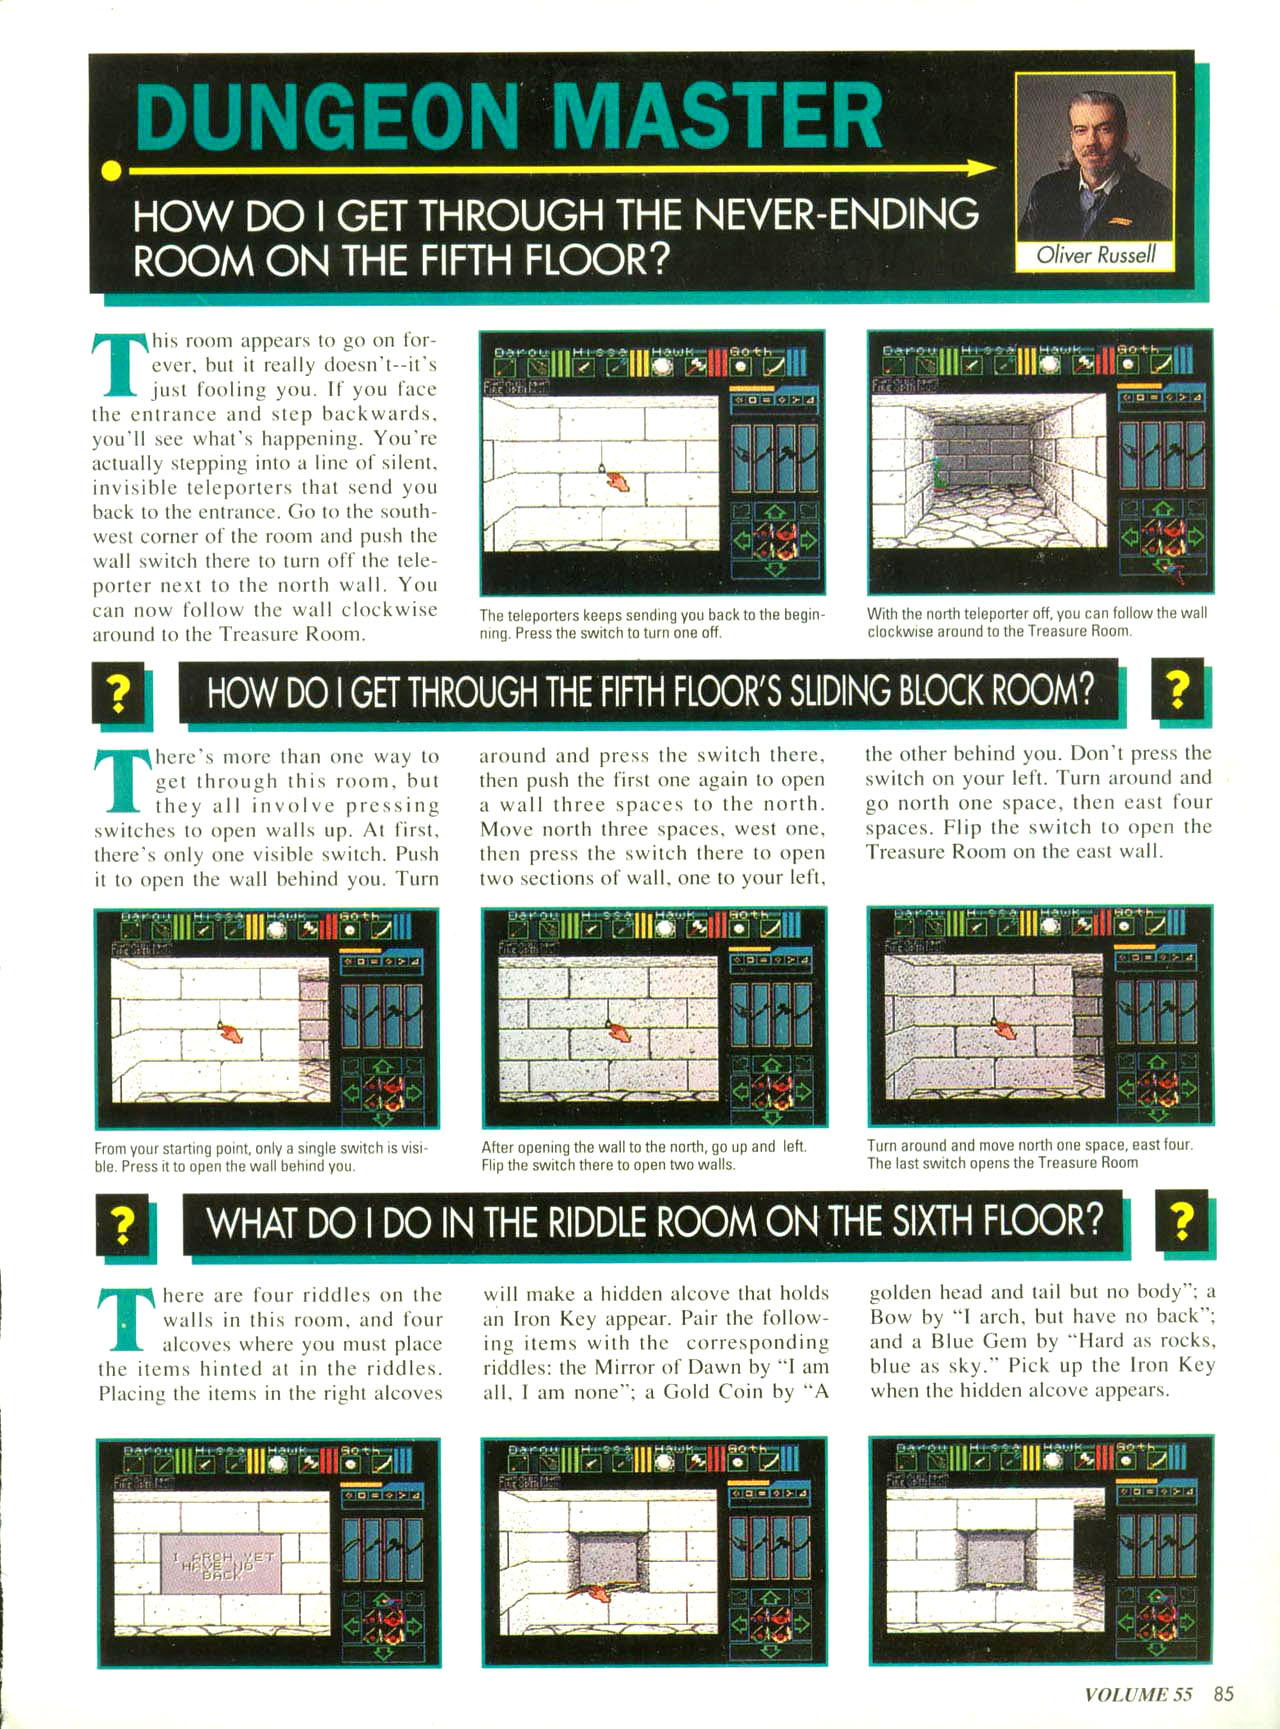 Dungeon Master for Super NES Hints published in American magazine 'Nintendo Power', Issue #55 December 1993, Page 85